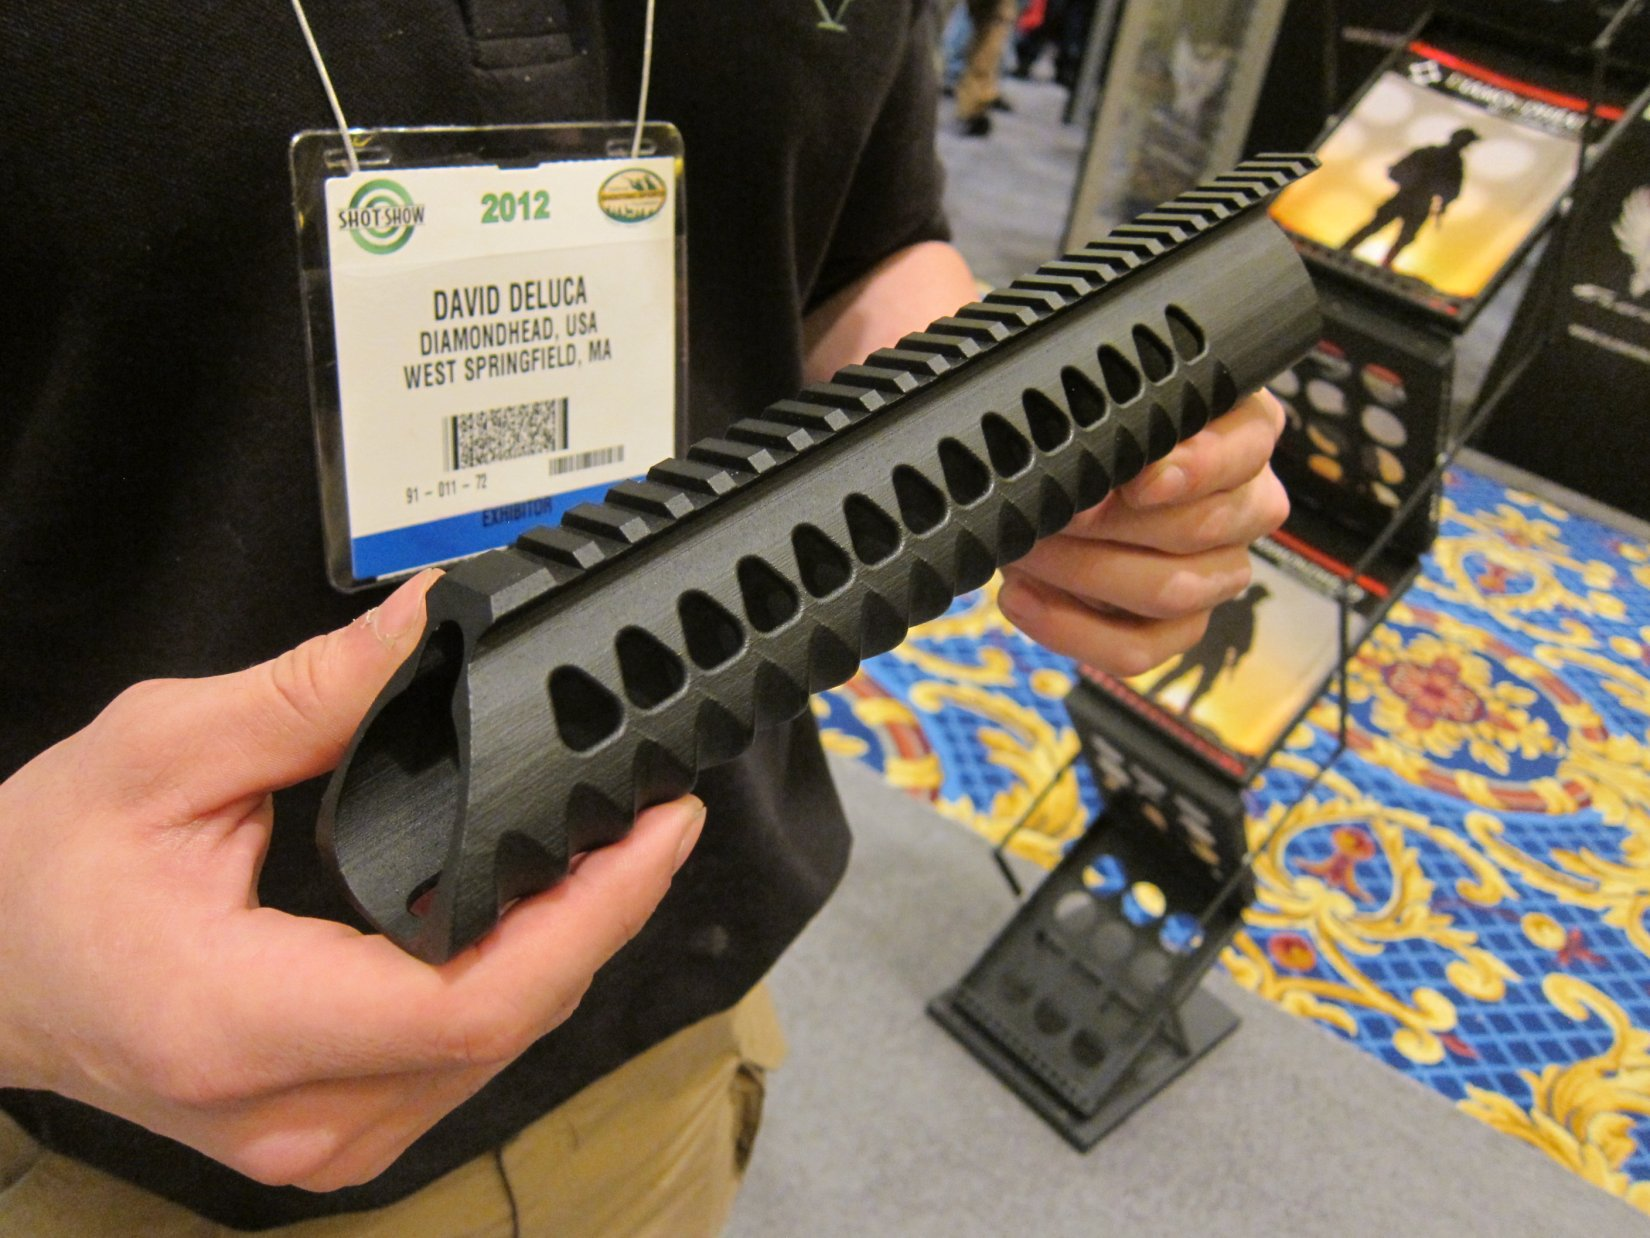 Diamondhead USA V RS T TD Versa Rail System Lightweight Free Float Triangular Modular Rail Tactical Handguard SHOT Show 2012 DefenseReview.com DR 6 Diamondhead USA V RS T/TD Versa Rail System Lightweight Free Float Triangular Tactical Handguard/Modular Rail System for Tactical AR 15 Carbine/SBRs at SHOT Show 2012 (Video!)